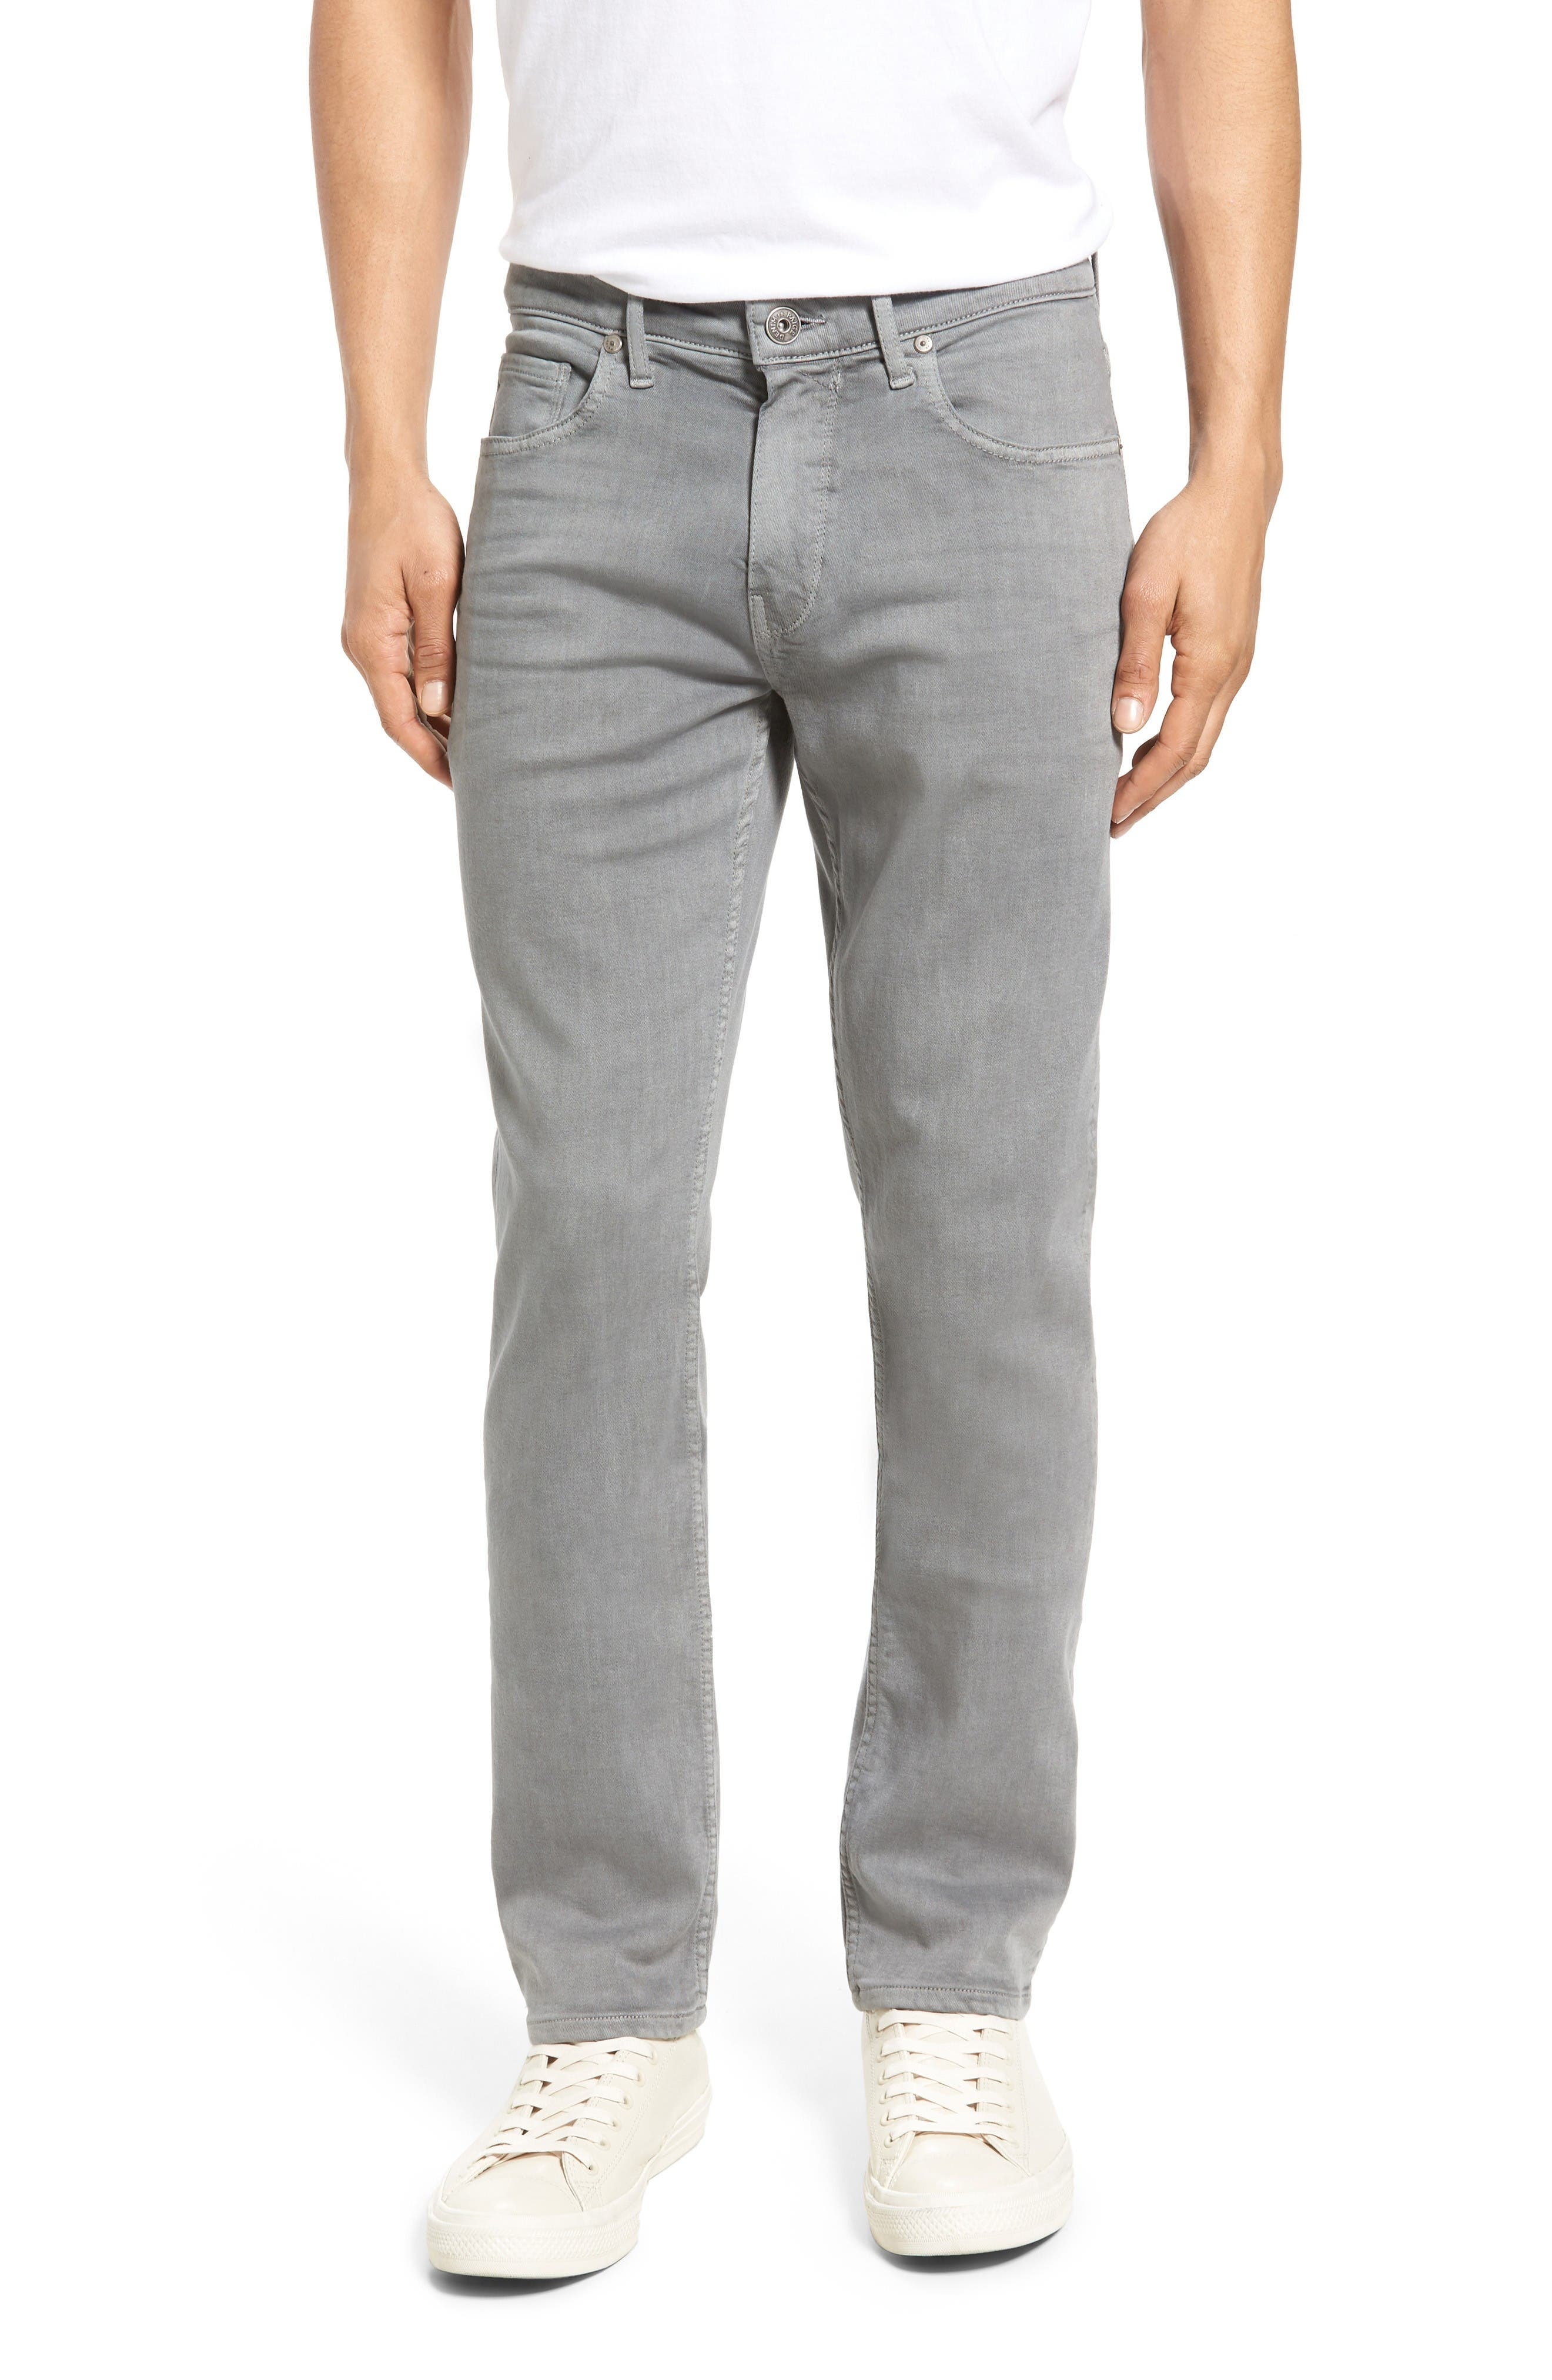 Transcend - Lennox Slim Fit Jeans,                         Main,                         color, Grey Clay